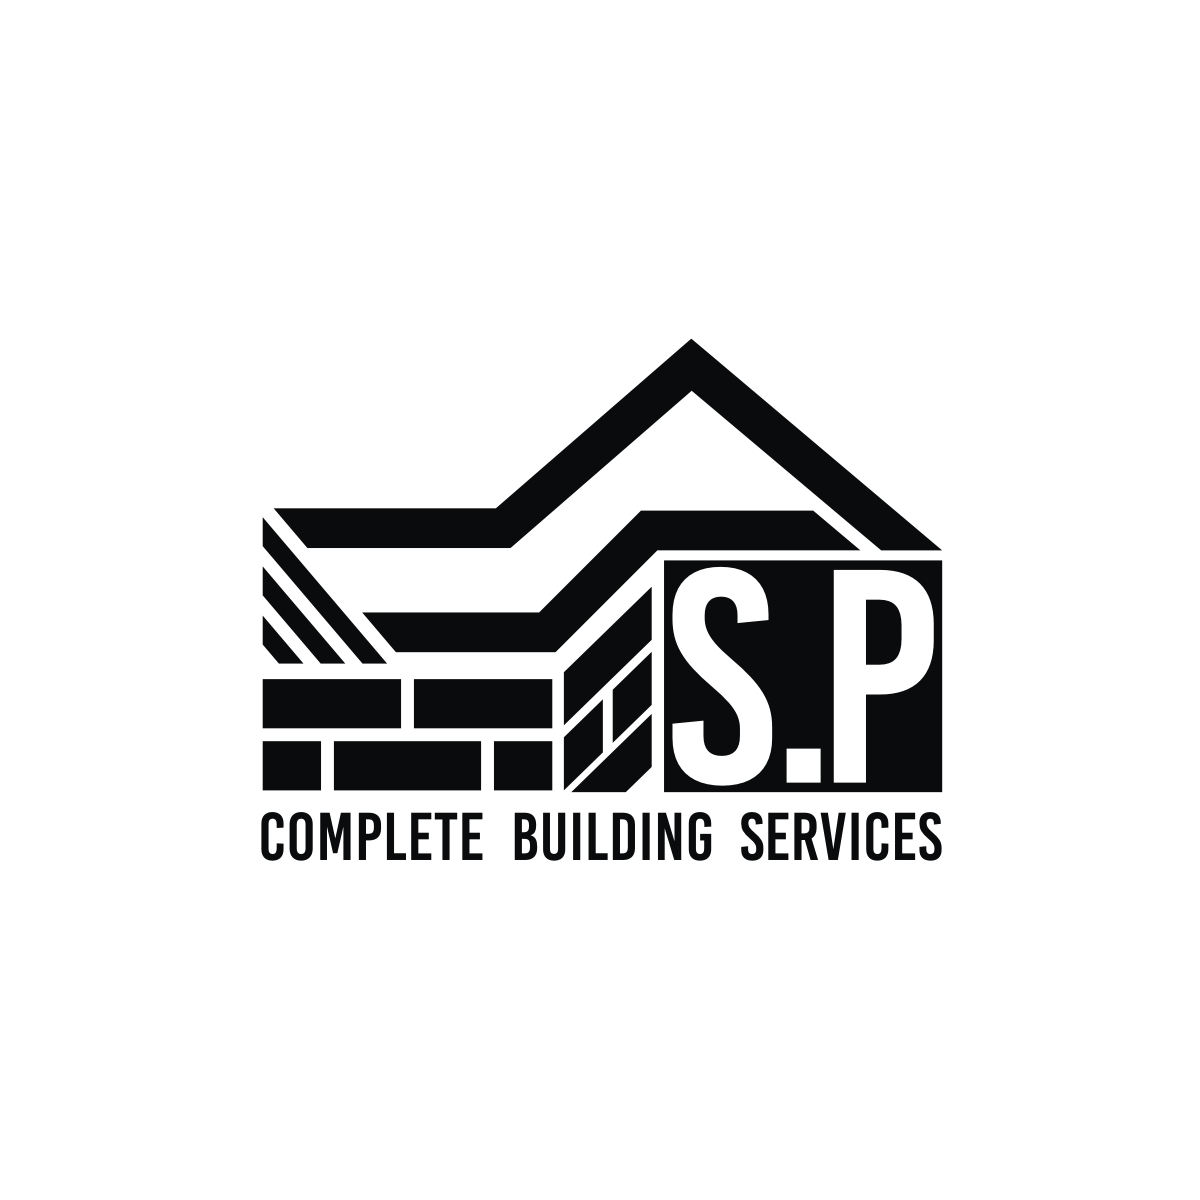 it company logo design for s p complete building services